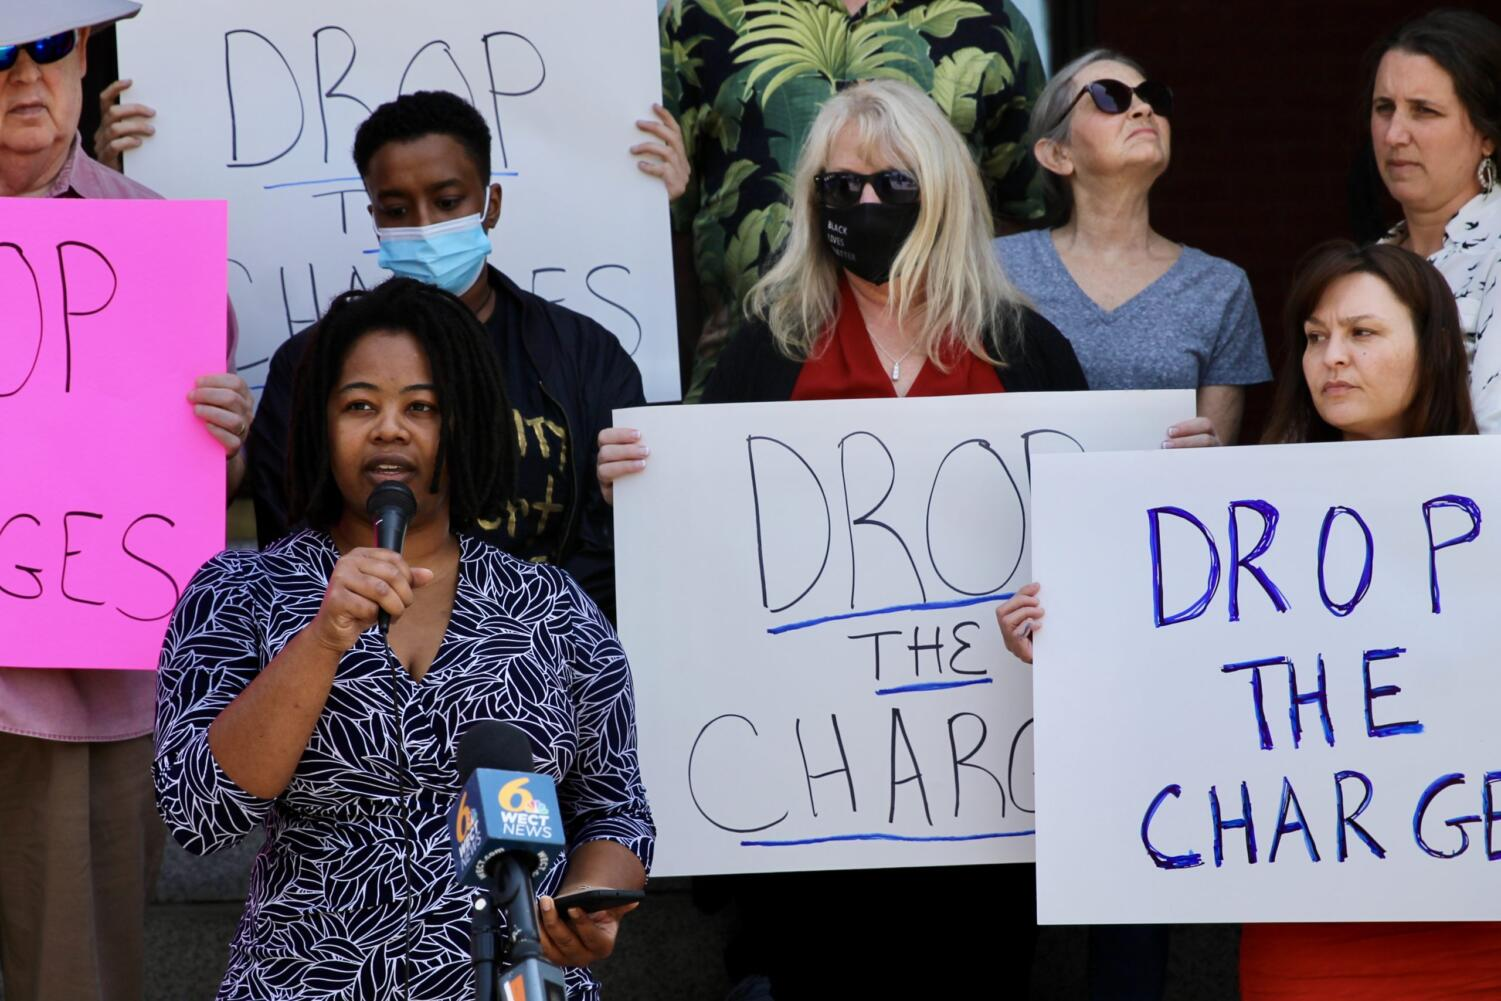 New Hanover for All's Ashley Daniels speaks at a press conference Monday, calling on the district attorney to drop charges against three prominent protesters in Wilmington who are accused of vandalizing property.